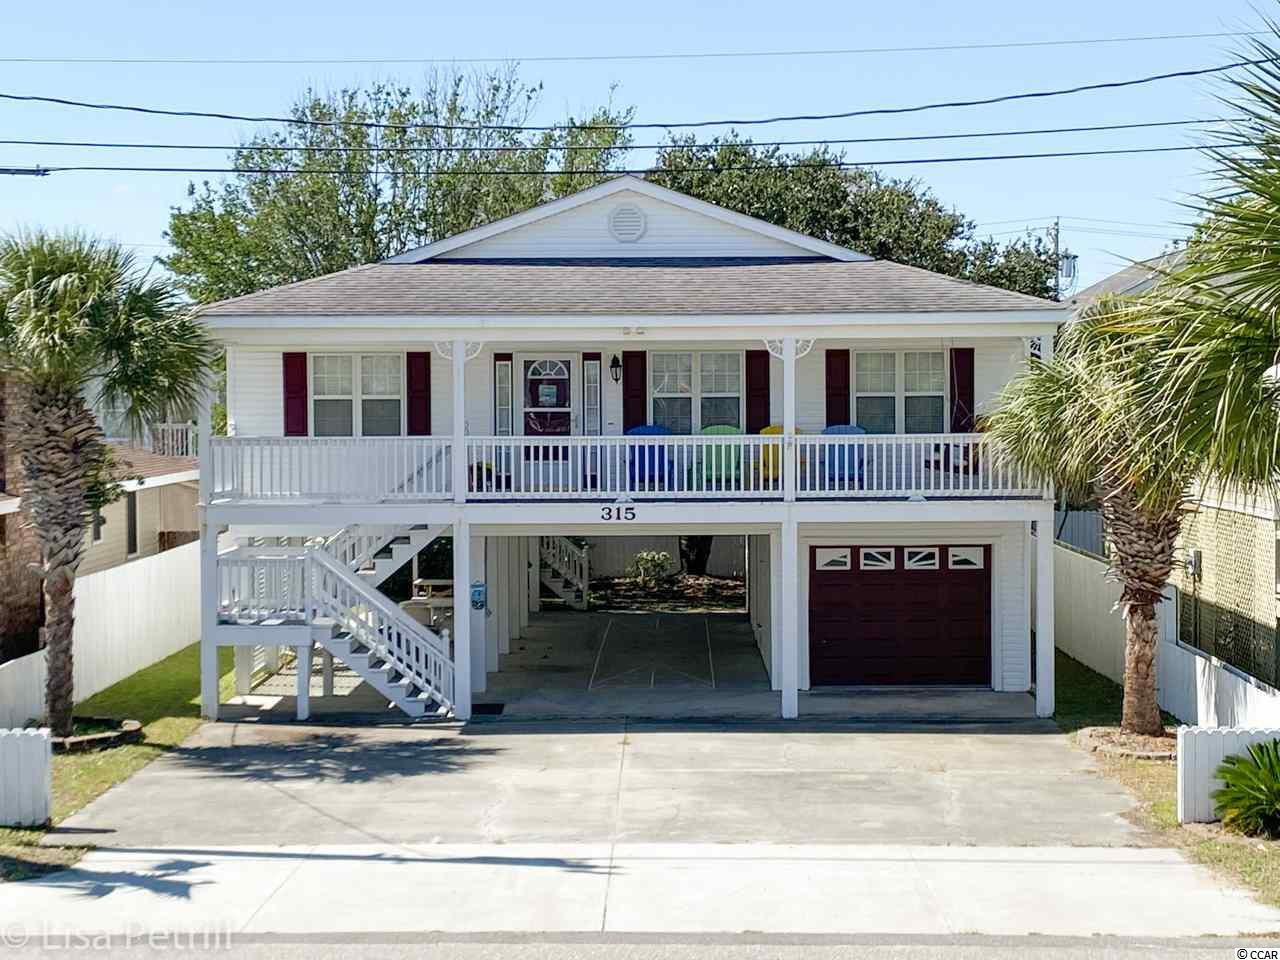 Beautifully decorated Beach Home in Cherry Grove. This 4 bedroom 2 bath home is just 1.5 blocks to the ocean in one of the best beach towns on the Grand Strand. The Home is a classic raised beach house with 2 garages underneath the home one for your golf cart and one for your car or great storage of beach toys. This home was never been rented and has always been used as a 2nd home. The back porch is screened in and the perfect place to relax and enjoy the breeze from the ocean. The interior has been updated and has a warm beach style to come right in and enjoy. This home is being sold furnished so you can just bring your swimsuit and toothbrush. 30th Ave is a short walk, bike or golf cart ride to dinning ,grocery and the gorgeous Cherry Grove Fishing Pier. Don't miss out on this turn key beach home in Beautiful Cherry Grove Beach.